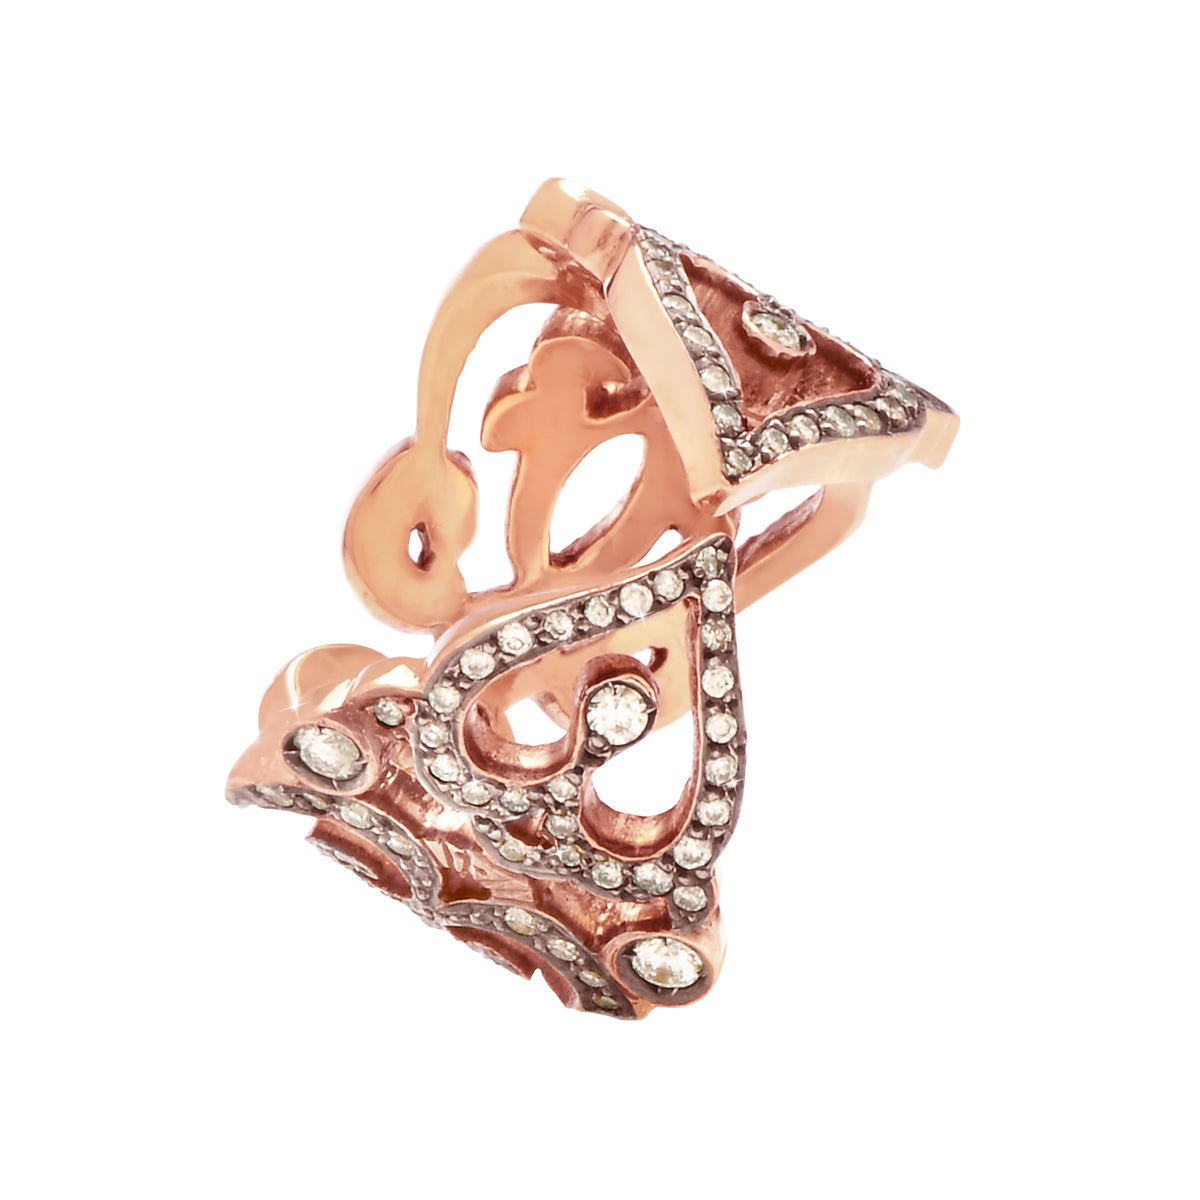 Ring 'heart' in 18k rose gold set with diamonds.